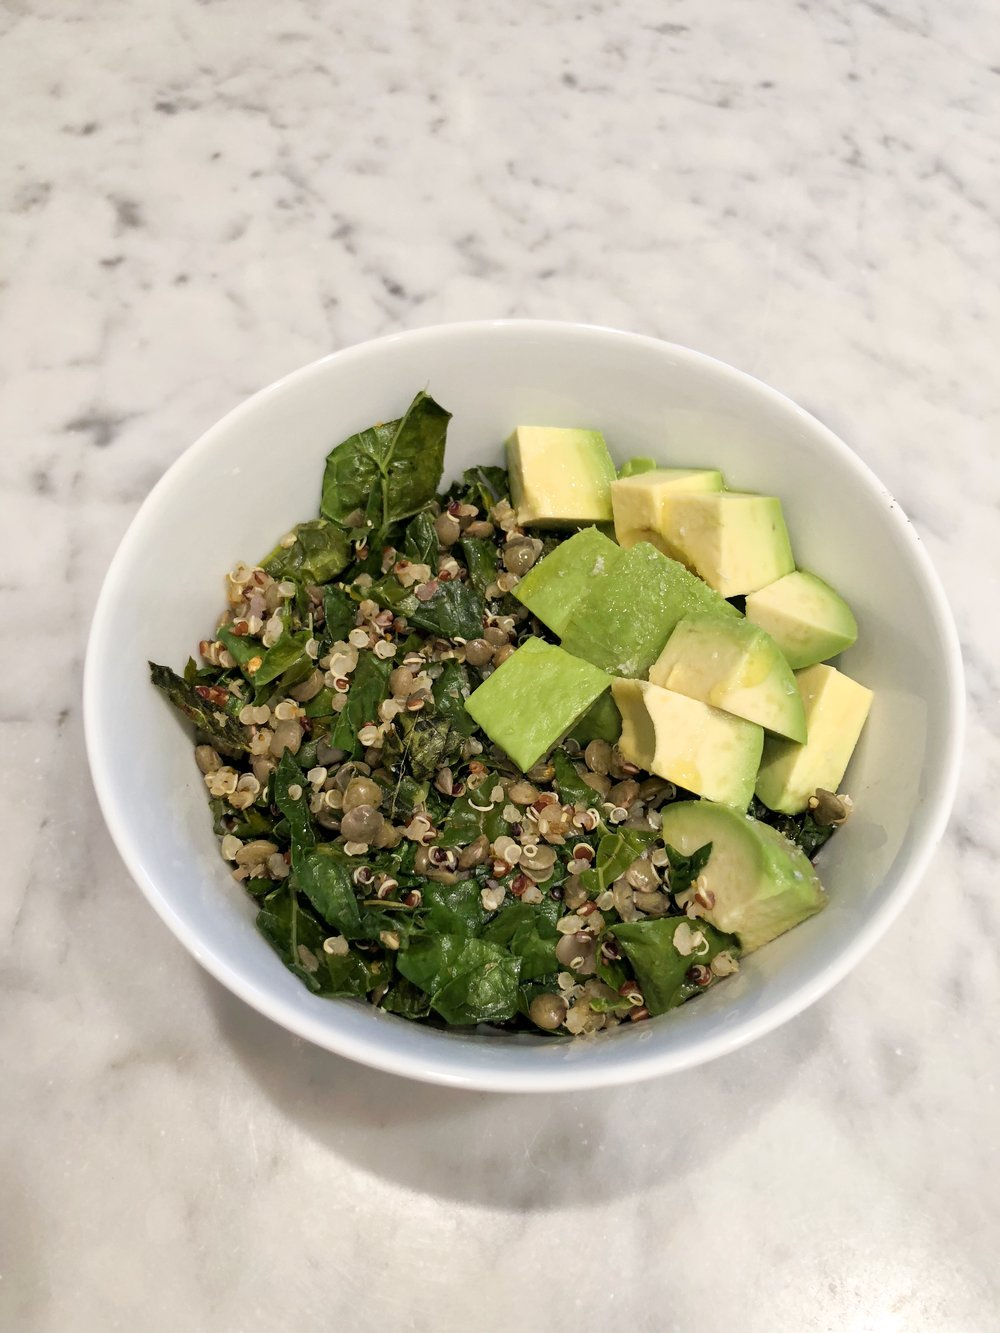 Quinoa, Lentils, and Kale - This is my 5-minute meal prep dinner for the win.Quickly wilt pre-chopped kale with olive oil and red pepper flakes. Stir in lentils and quinoa, then cook until warmed through. Add a little avocado for healthy fats and you're set!